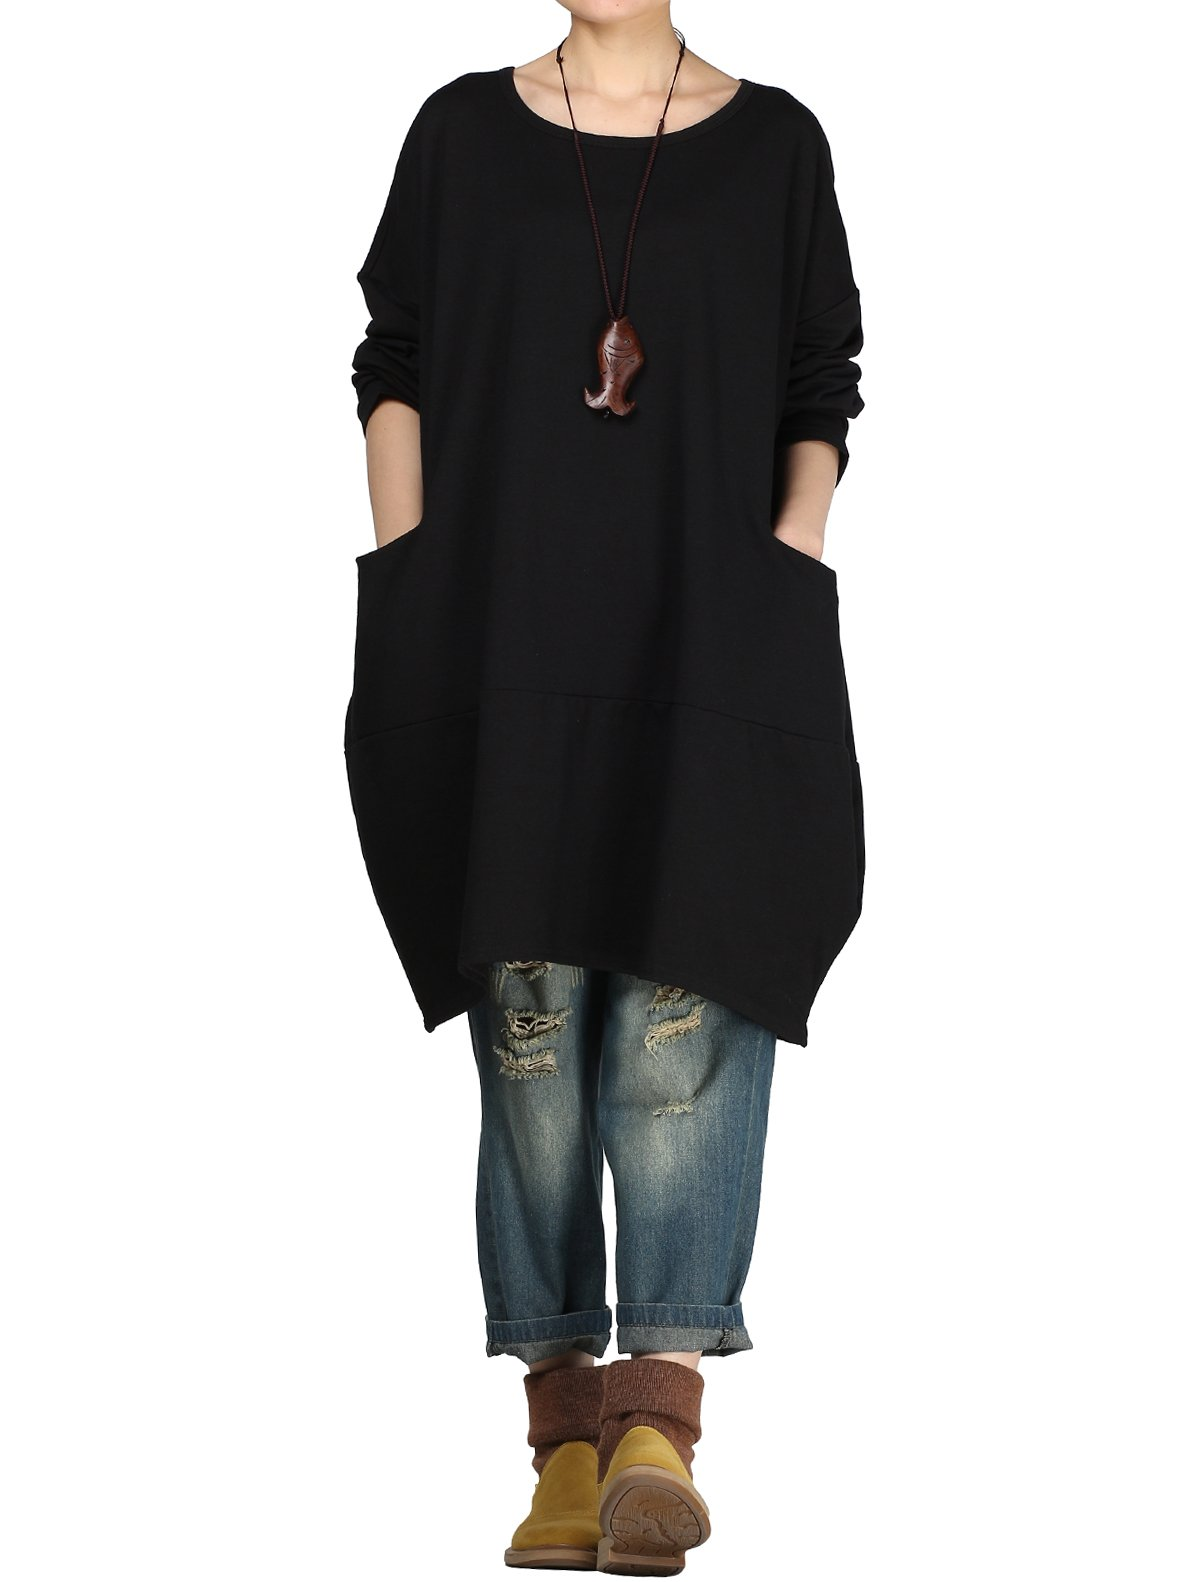 Mordenmiss Women's Stylish Sweatshirt Dress Knitted Jumpers Blouse Pullover w/Pockets L Black